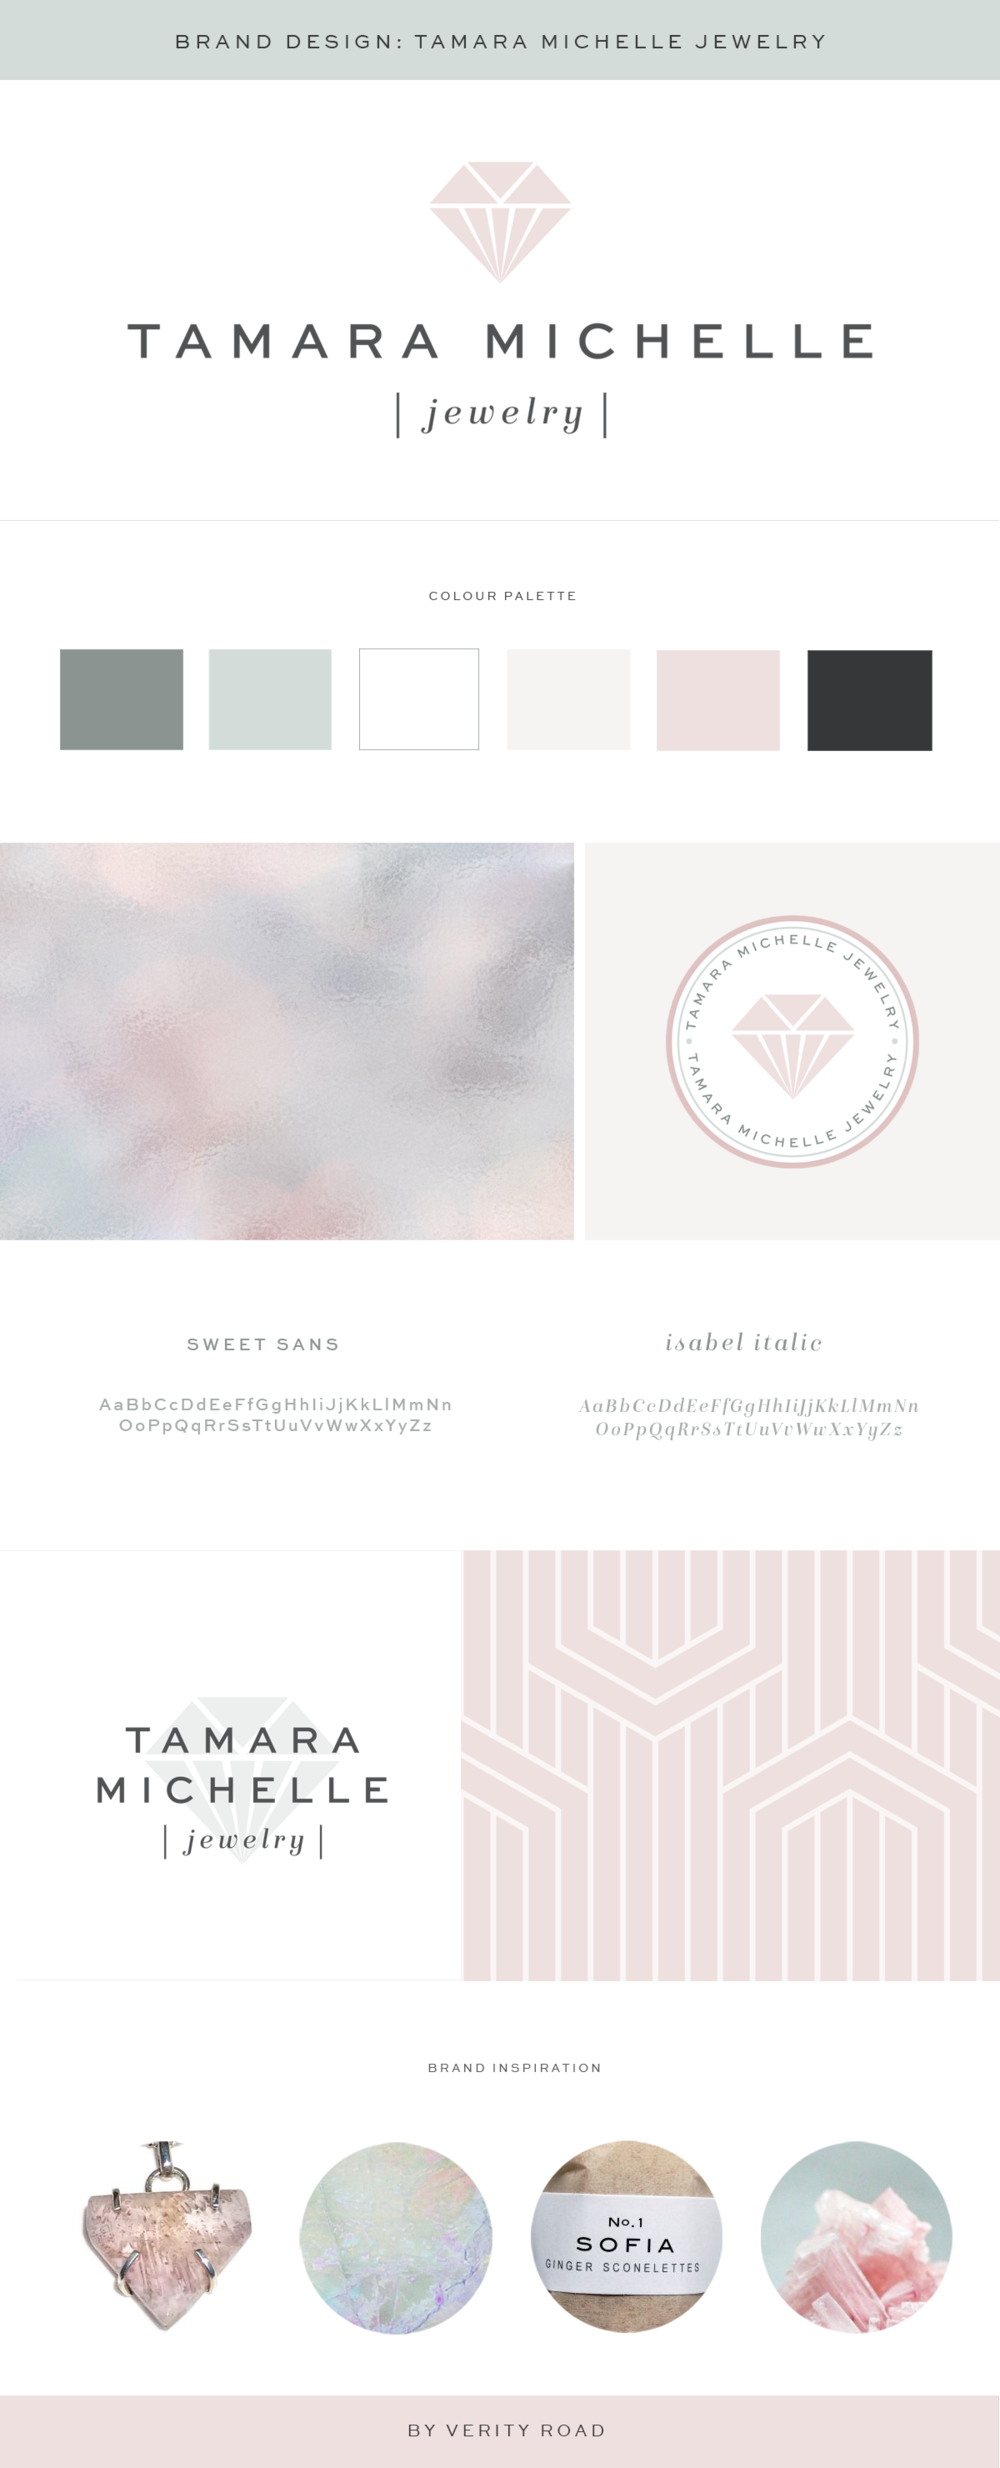 Brand board, brand style guide for the branding of Tamara Michelle Jewelry by Verity Road. Feminine branding, feminine web design, luxury branding, female entrepreneur, lifestyle brand, wedding business branding, weddings and events branding. Logo design, brand elements, feminine colour palette, business card design, patterns and textures. See more for custom web design.